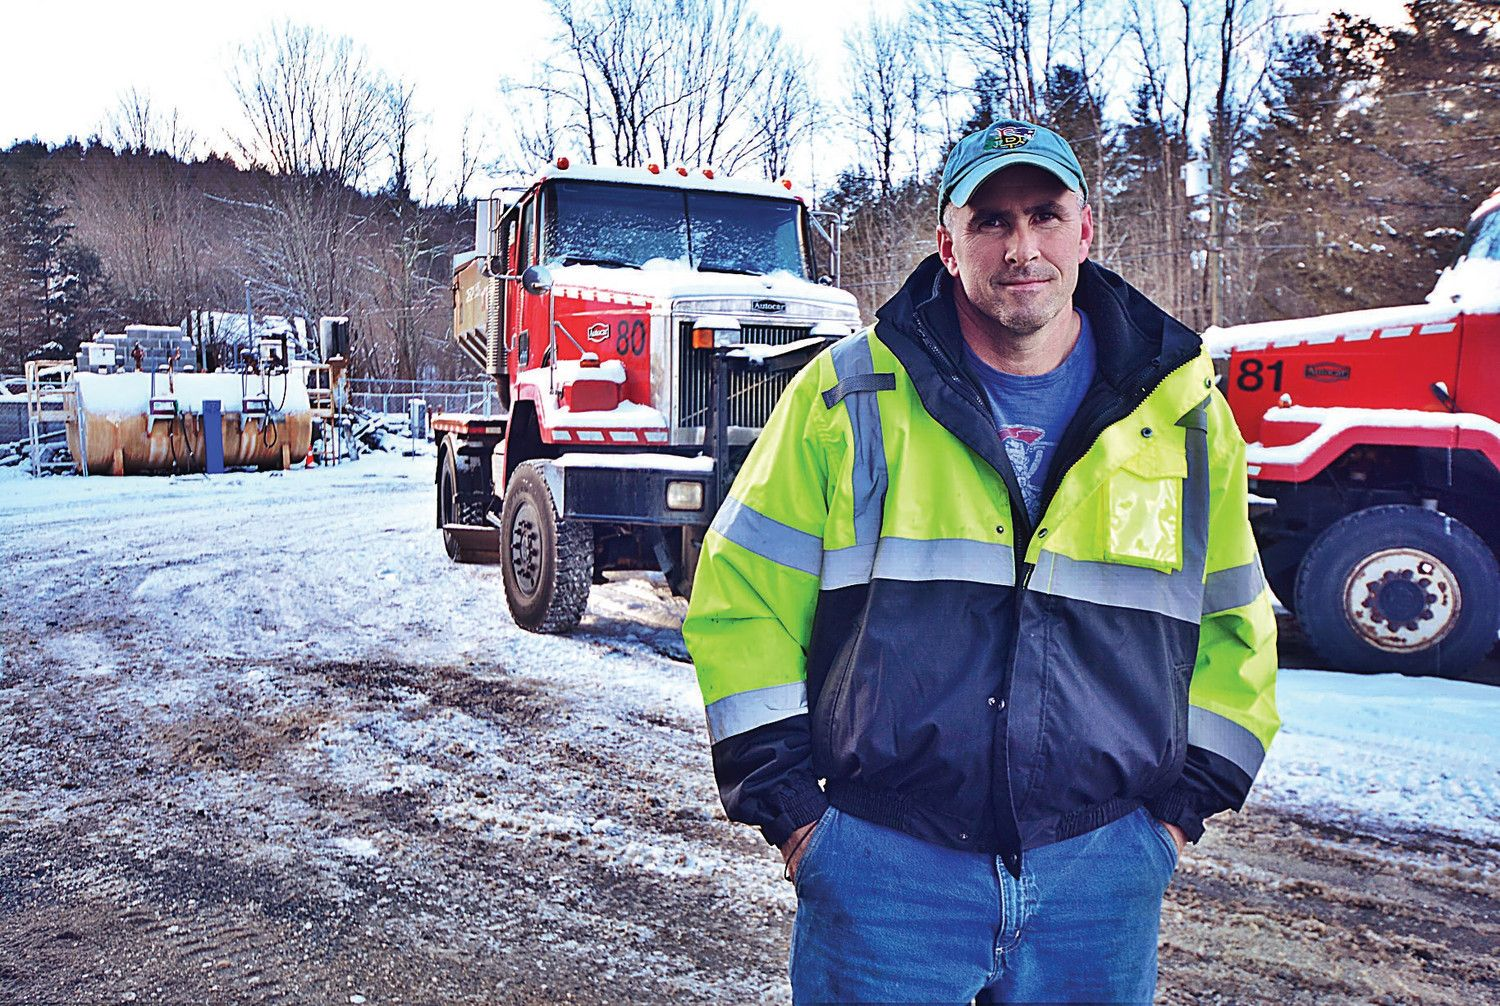 Quincy donates 3 used plow trucks to Sandisfield in wake of fire